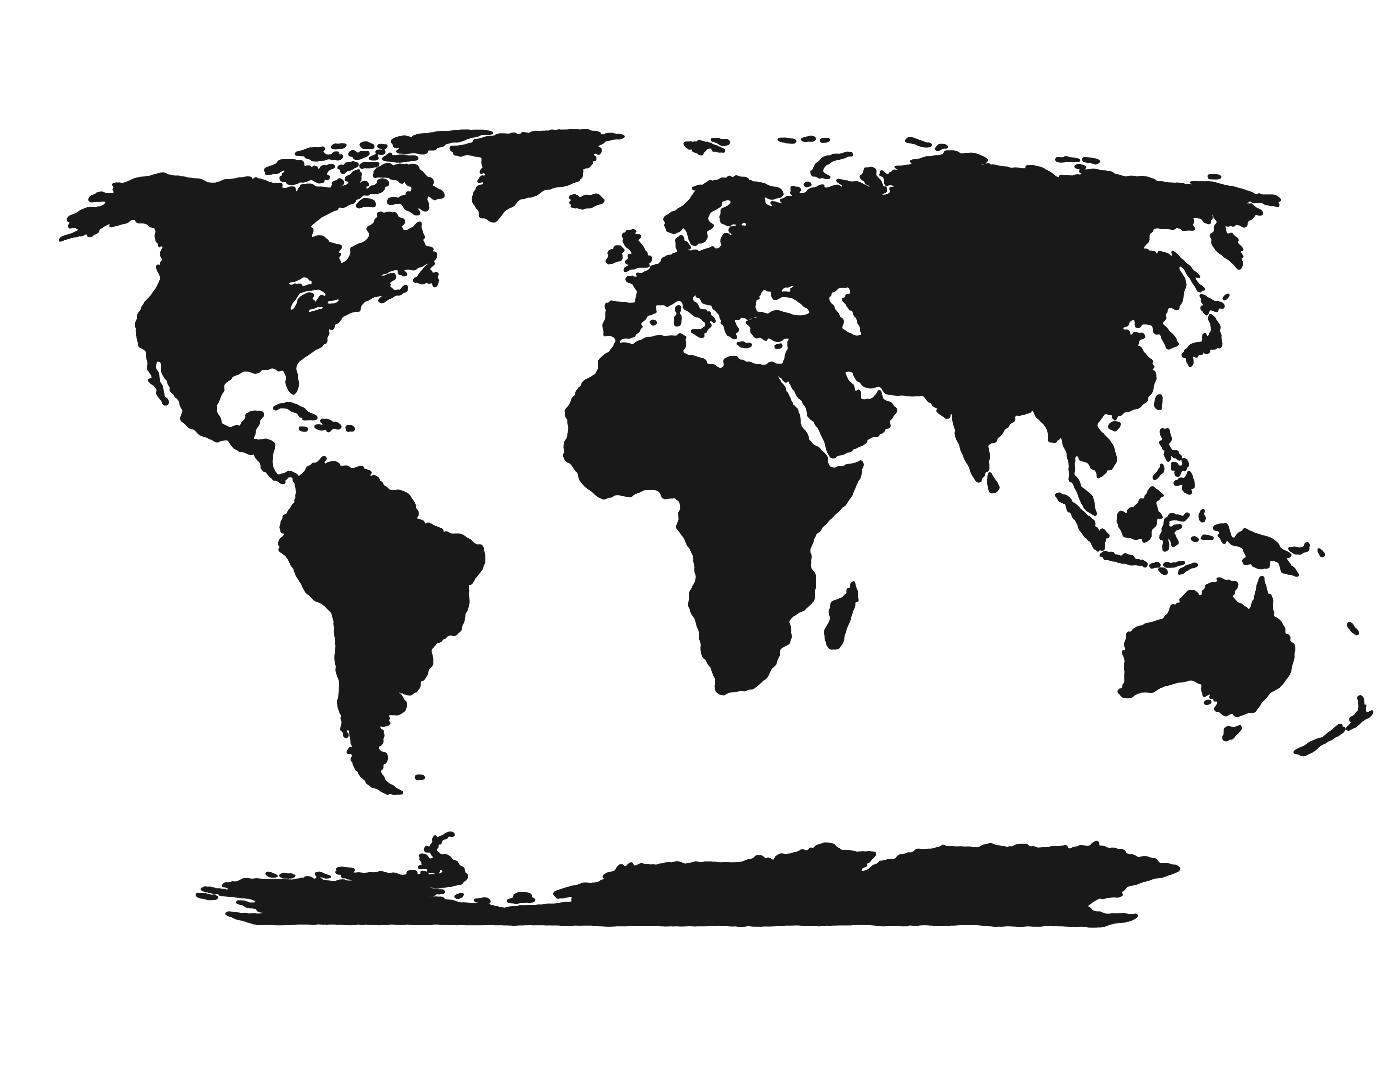 Continent clipart black and white For World Printable White White